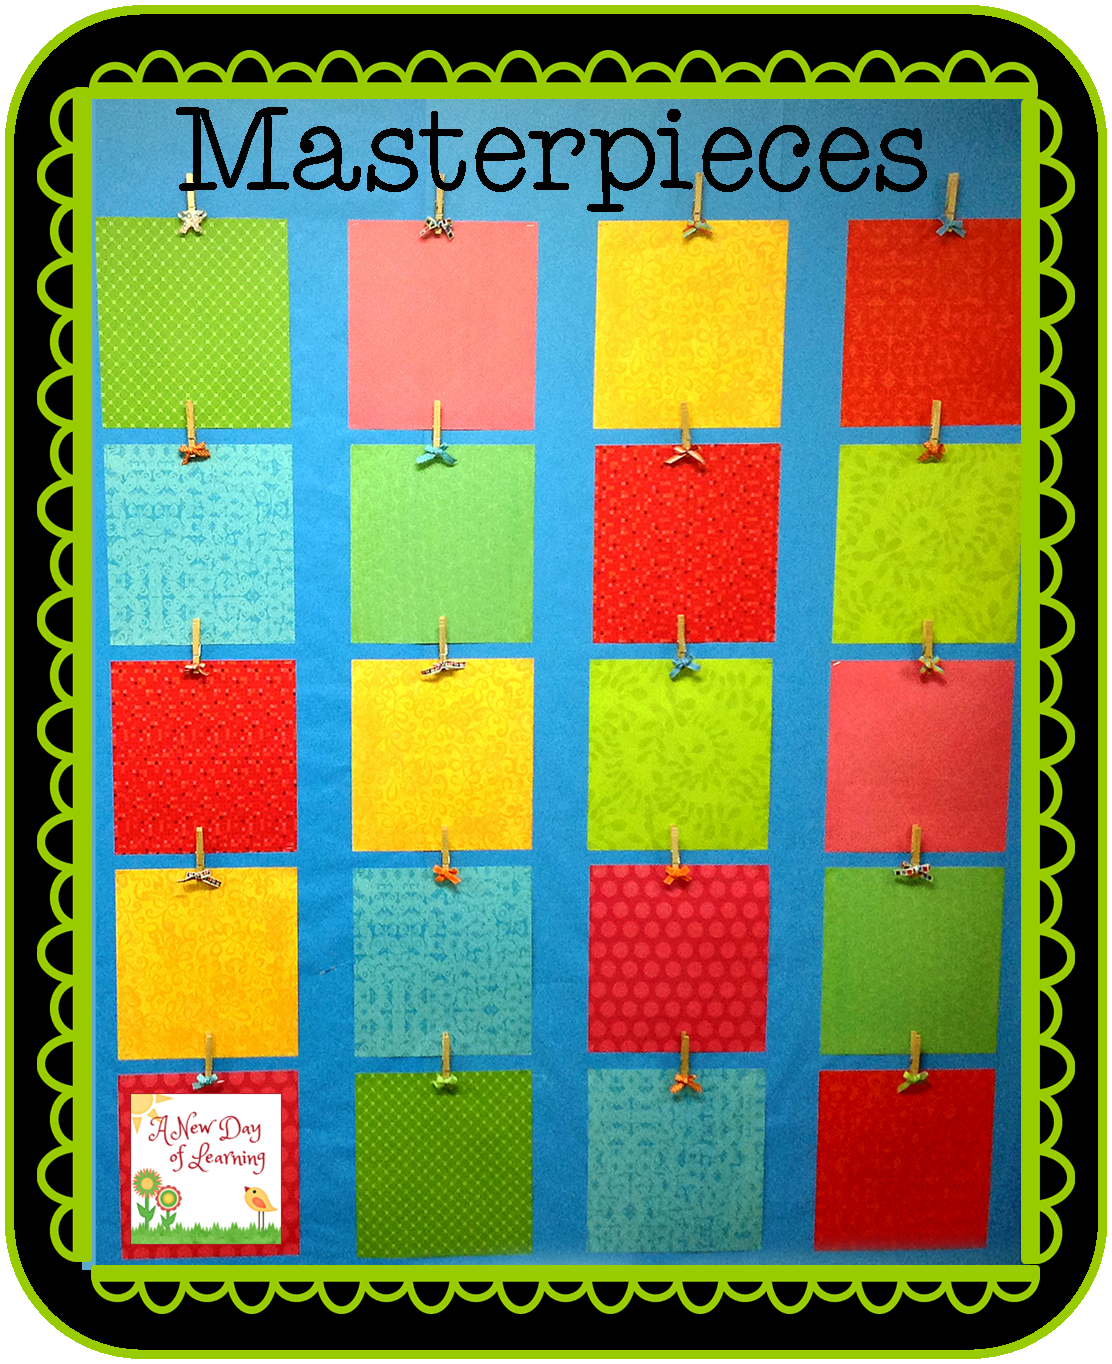 Scrapbook paper display -  Scrapbook Paper Clothespins And Ribbon To Make A Very Cute And Practical Bulletin Board To Display Student Work When I Saw It I Knew I Could Make My